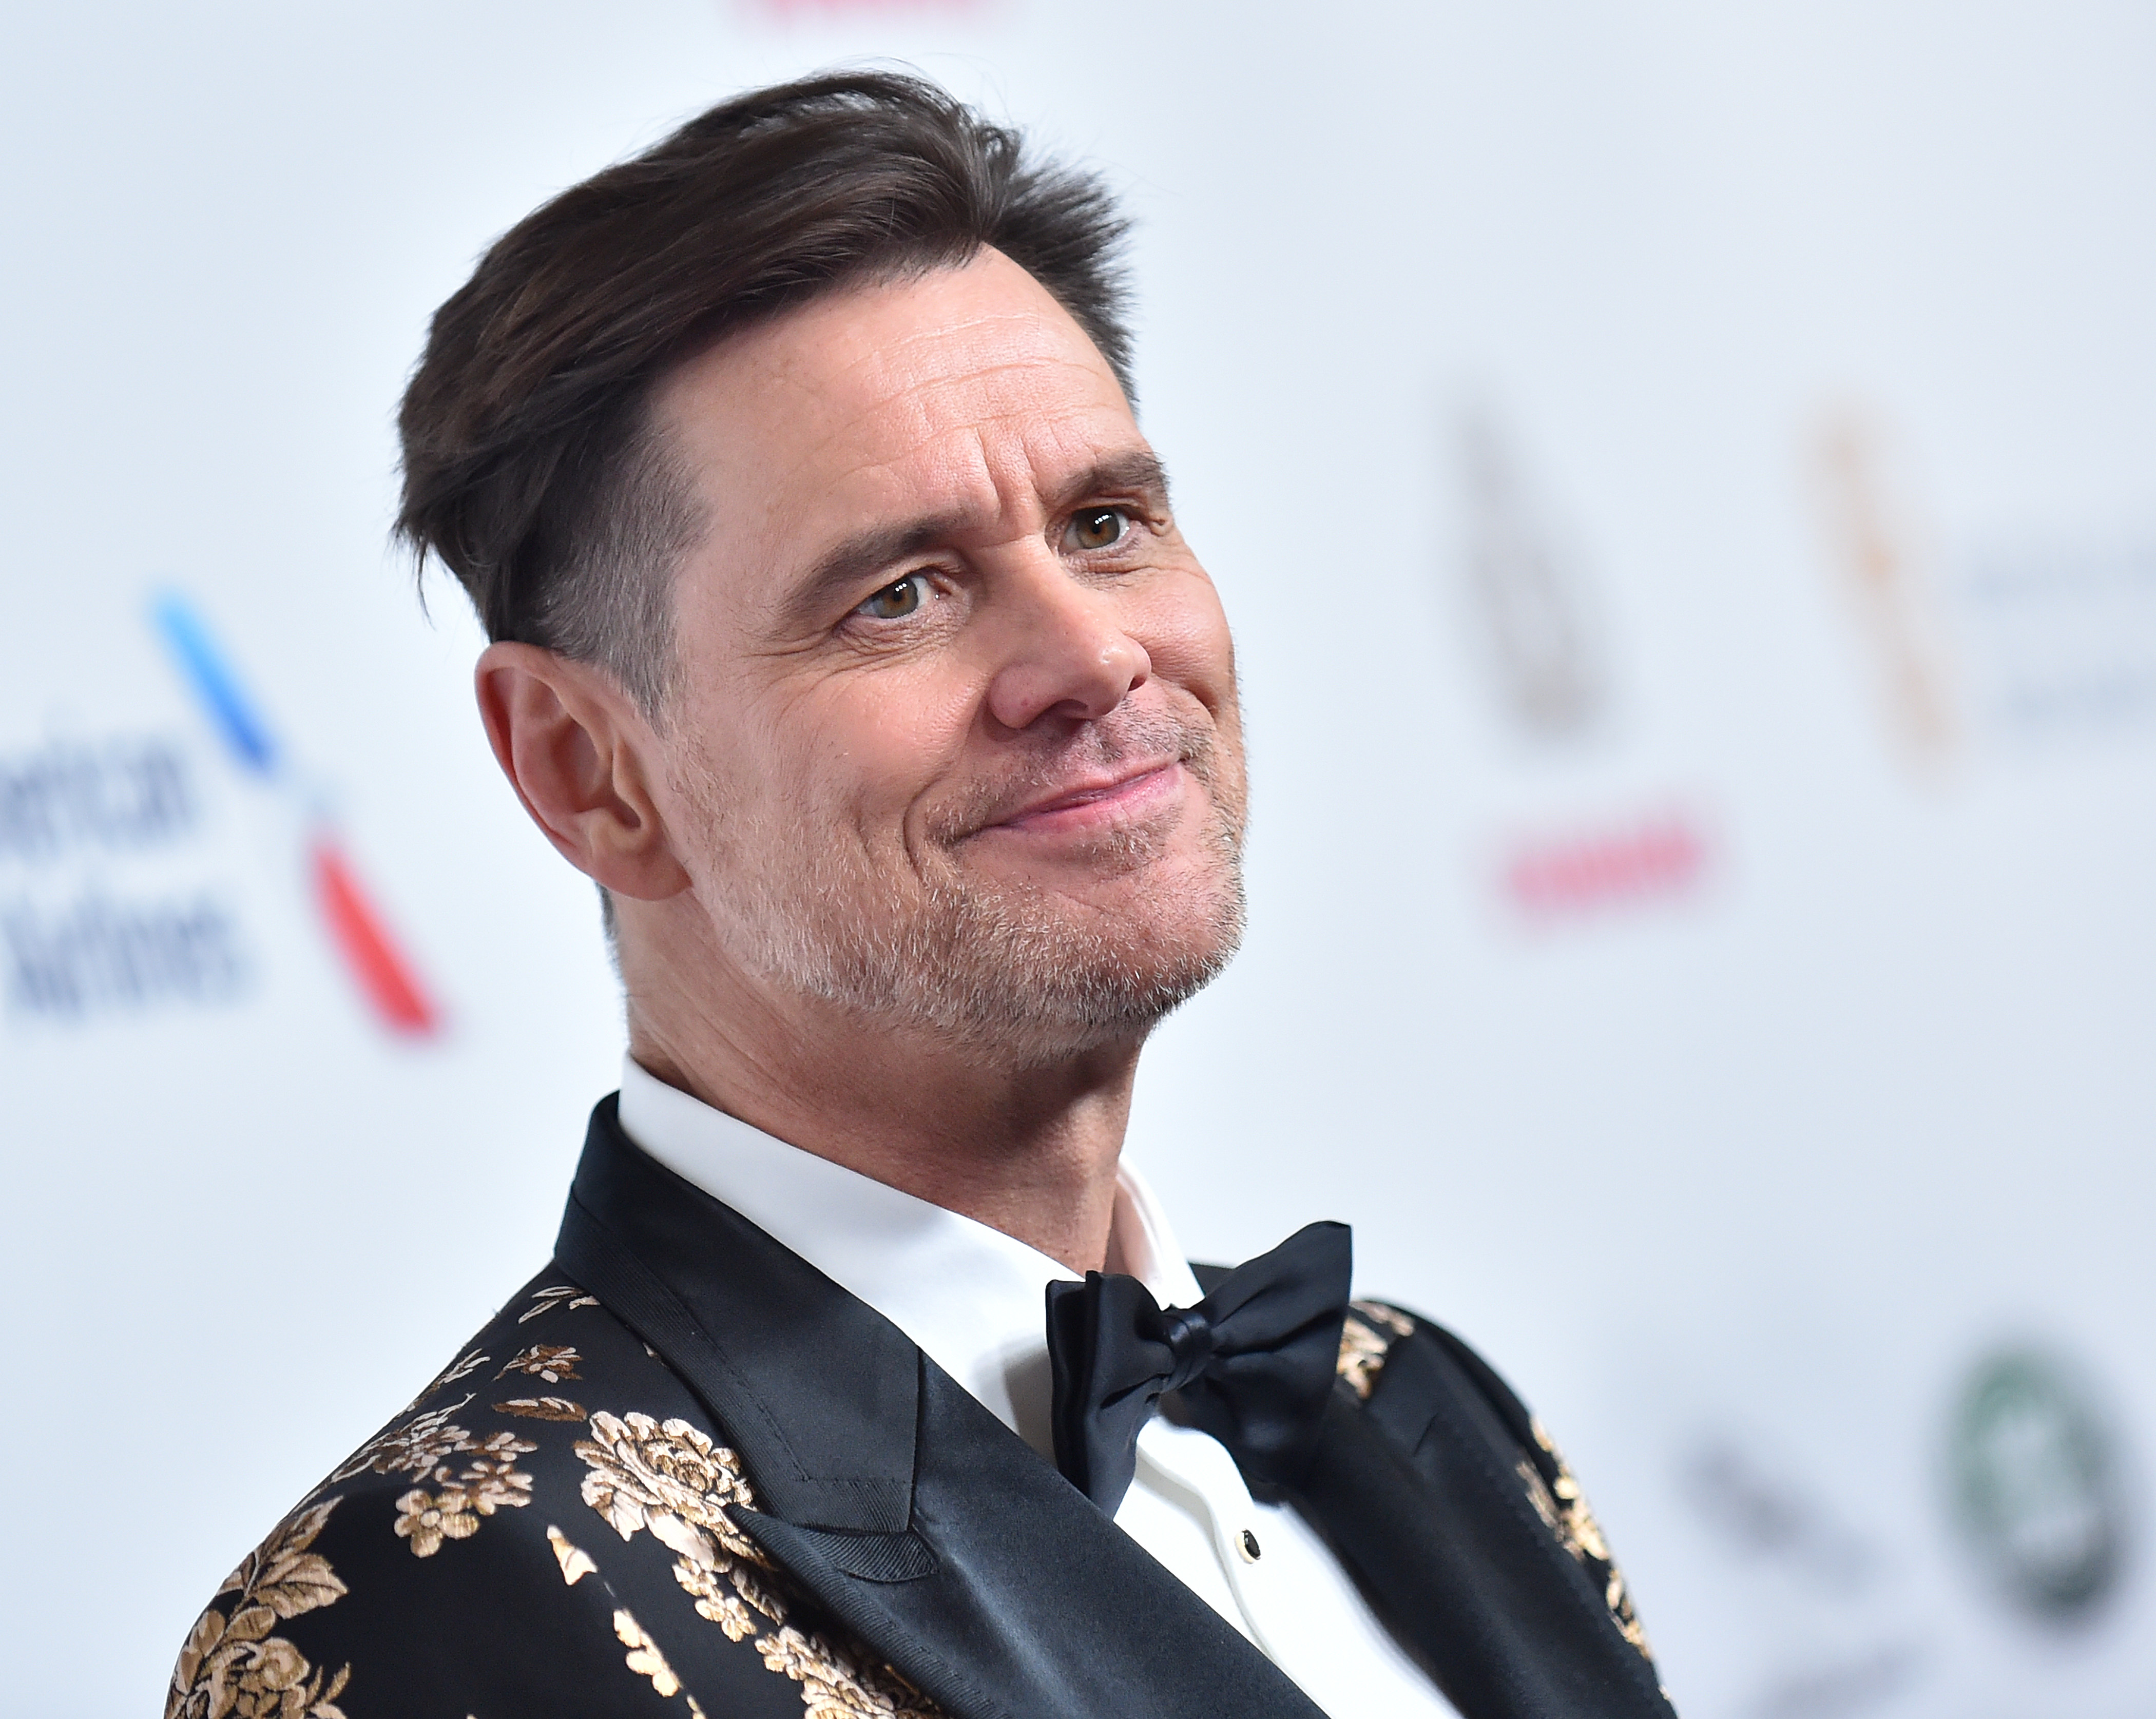 Jim Carrey Doesn't Care If His Political Paintings Cost Him Fans: 'Lose Them'